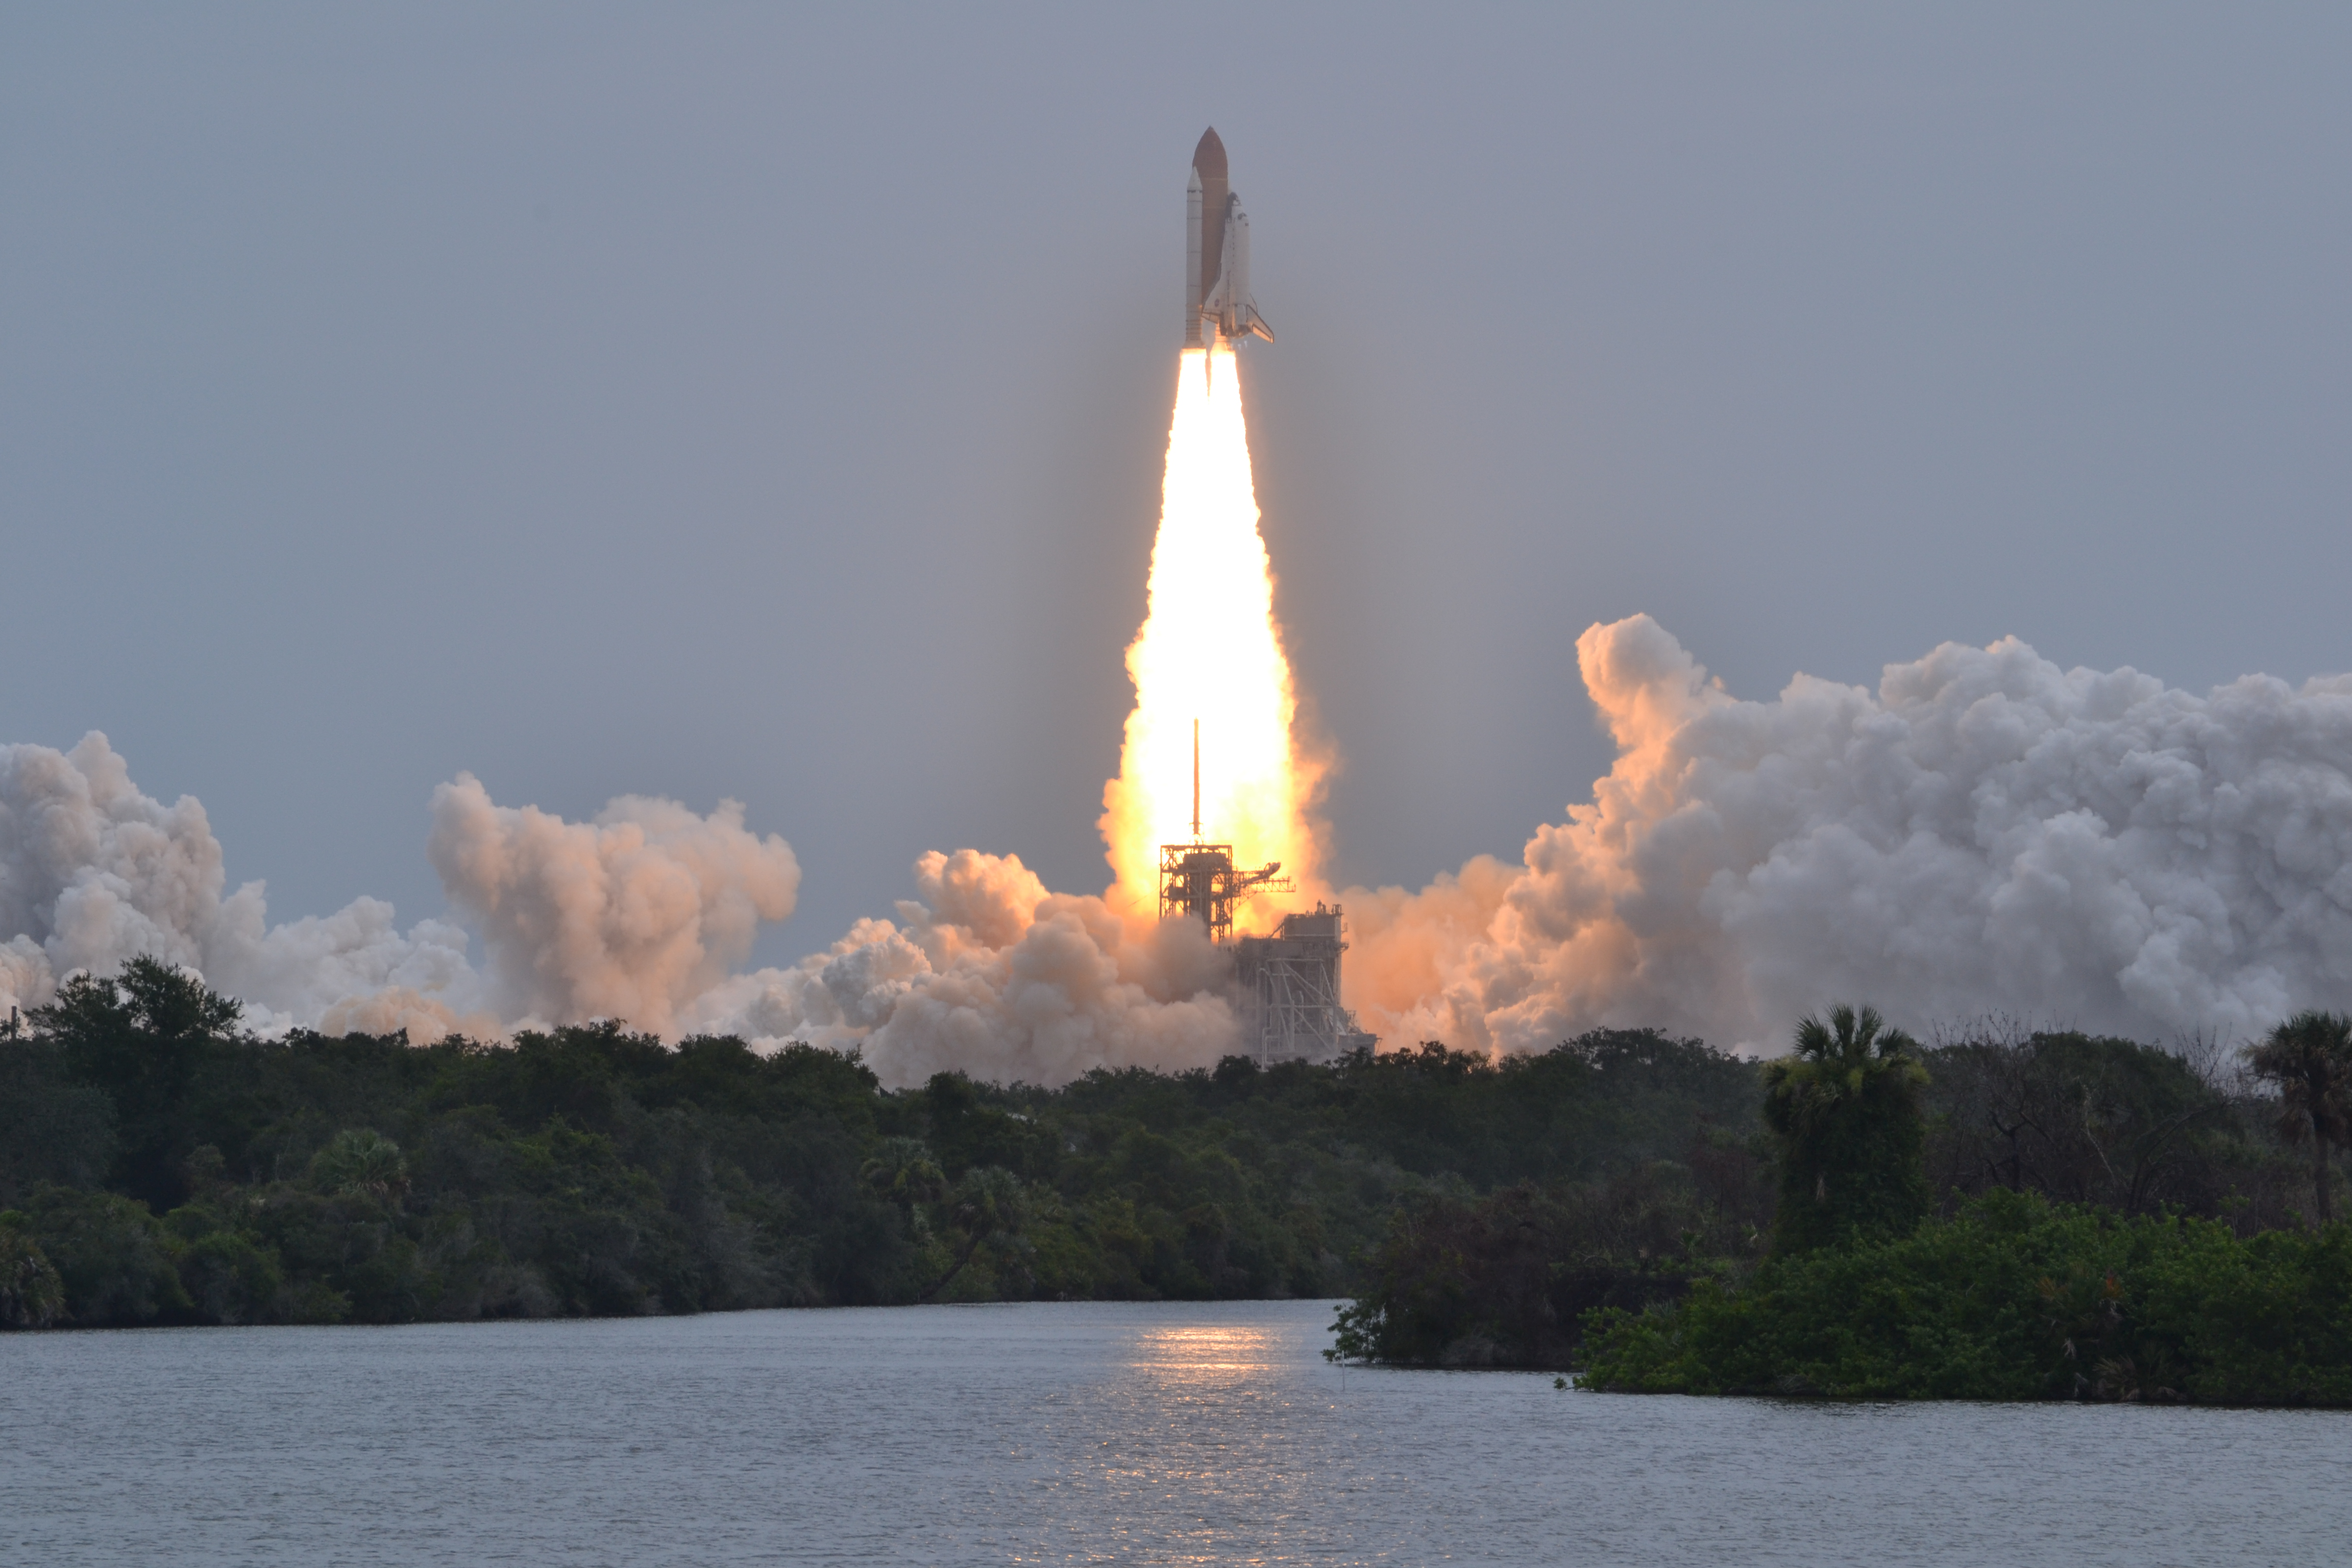 space shuttle launch today live - photo #20